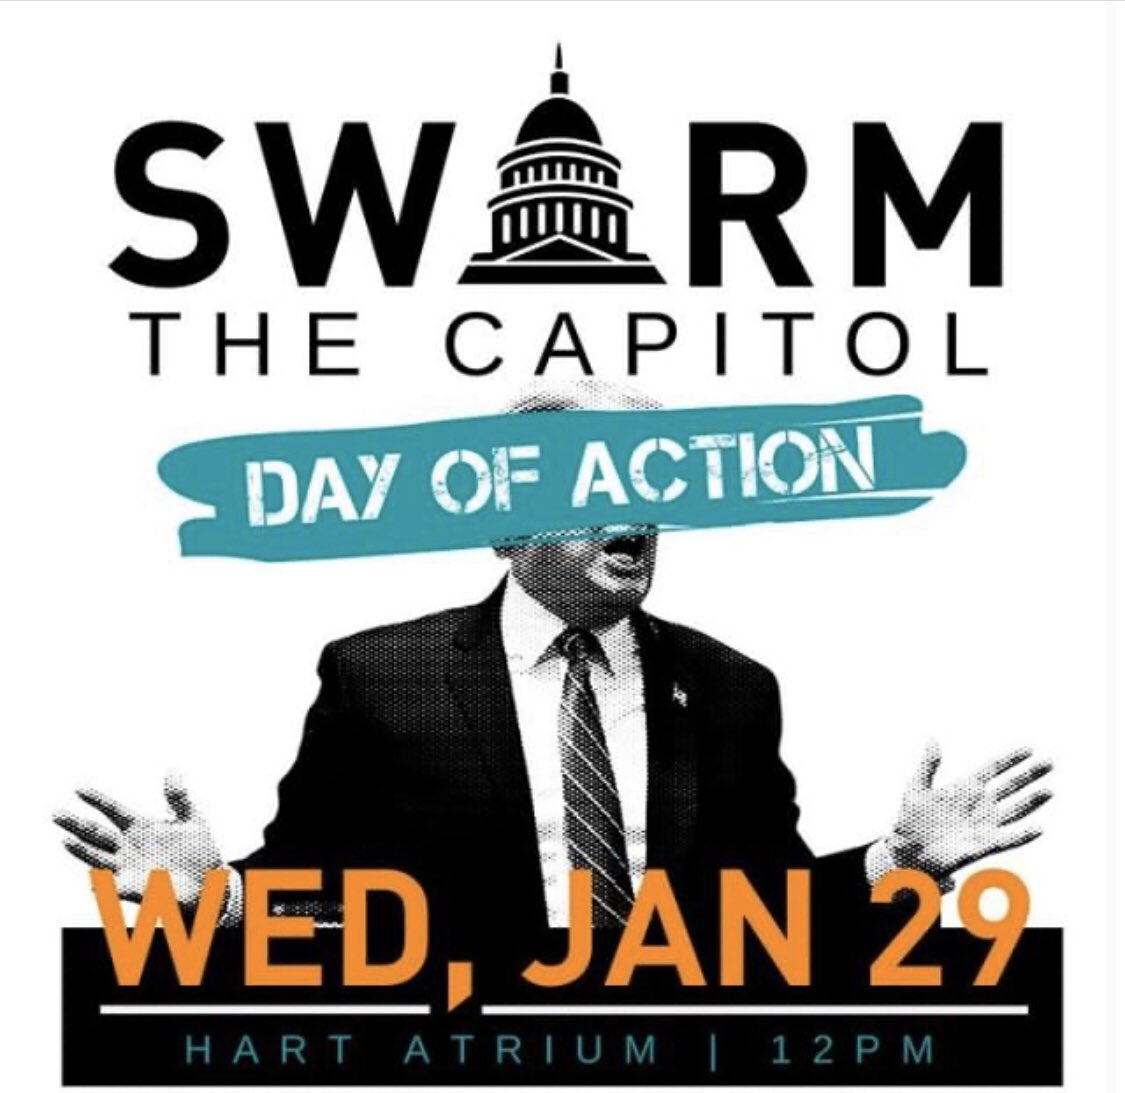 Join us in DC at the Hart Senate Bldg next Wed, Jan 29th at noon as we SWARM THE CAPITOL to demand #DocsAndWitnesses  #StopTheCoverup  #SwarmTheSenate  #AmericaWantsWitnesses    —>Sign up to join here:  http://bit.ly/2S0MLjR   —>Help someone else get there:  http://bit.ly/2S0MLjR